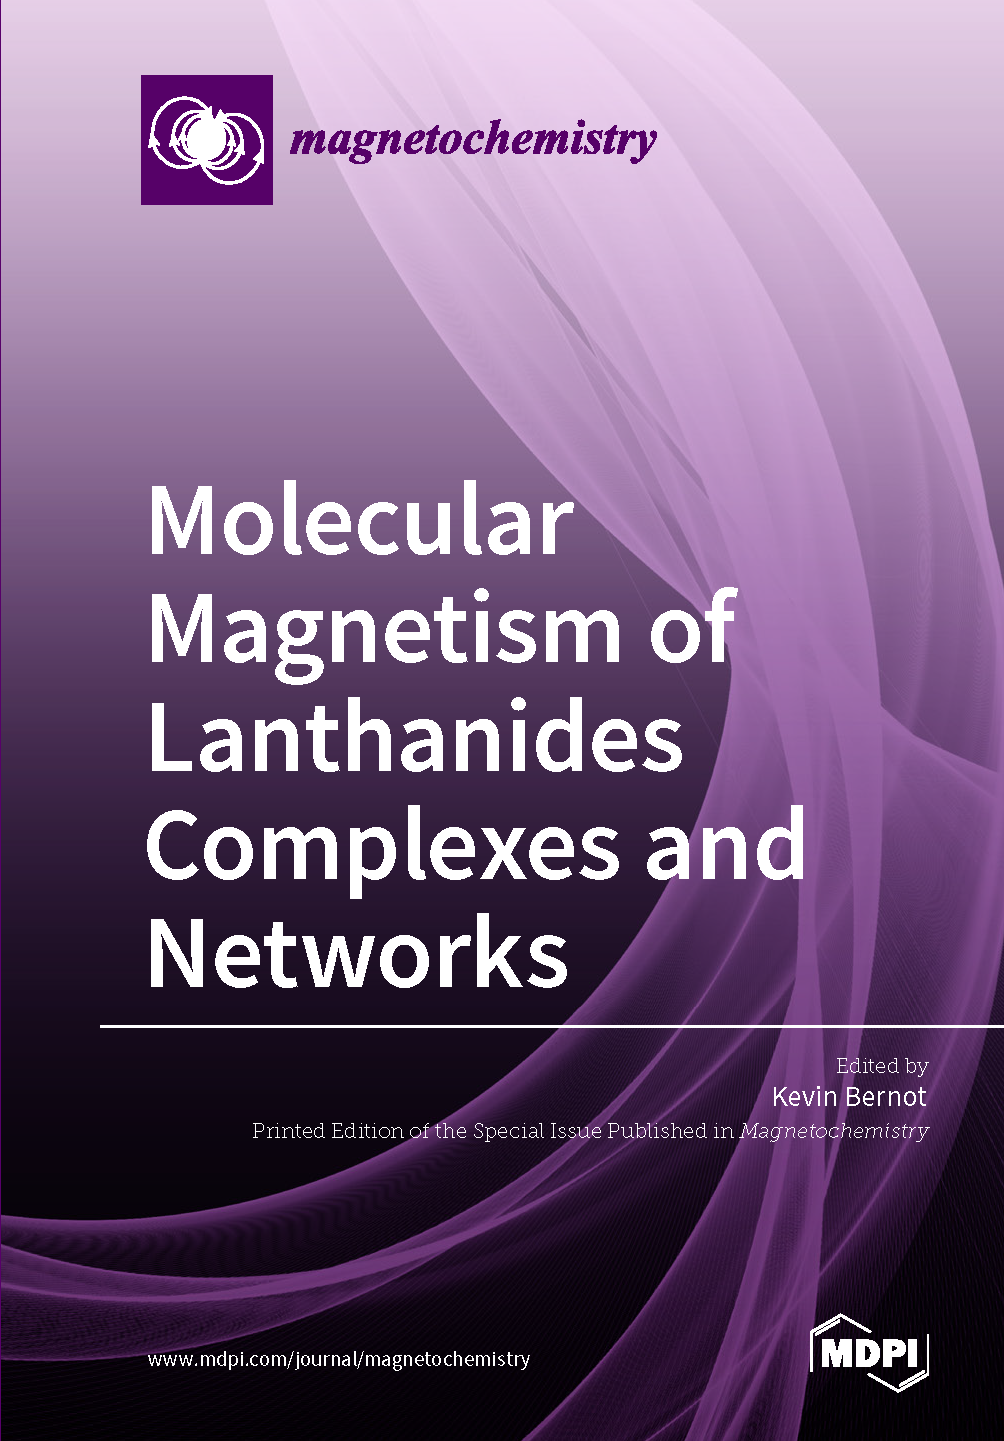 Molecular Magnetism of Lanthanides Complexes and Networks